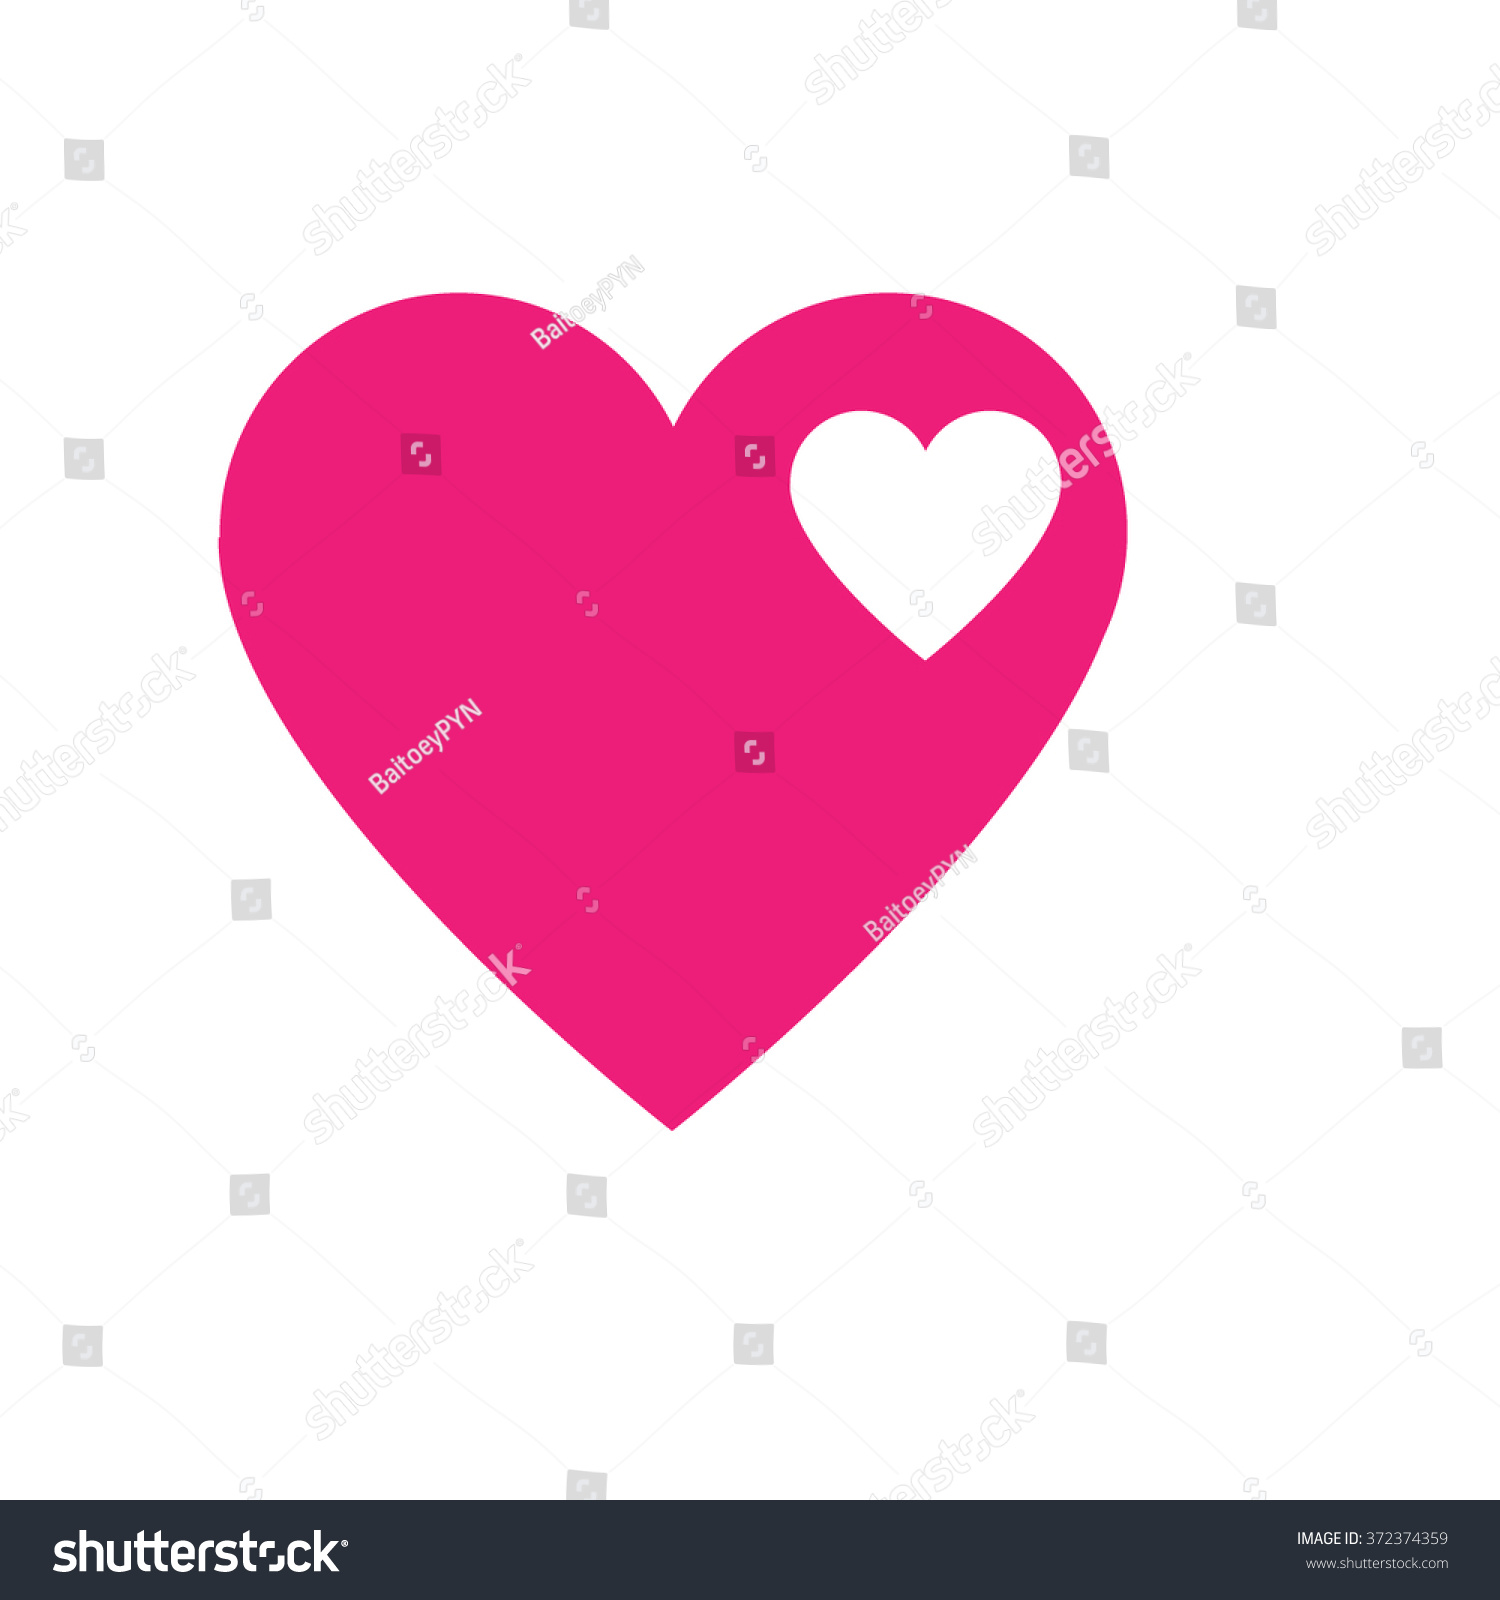 White Small Heart Pink Hearts Symbol Stock Vector Royalty Free